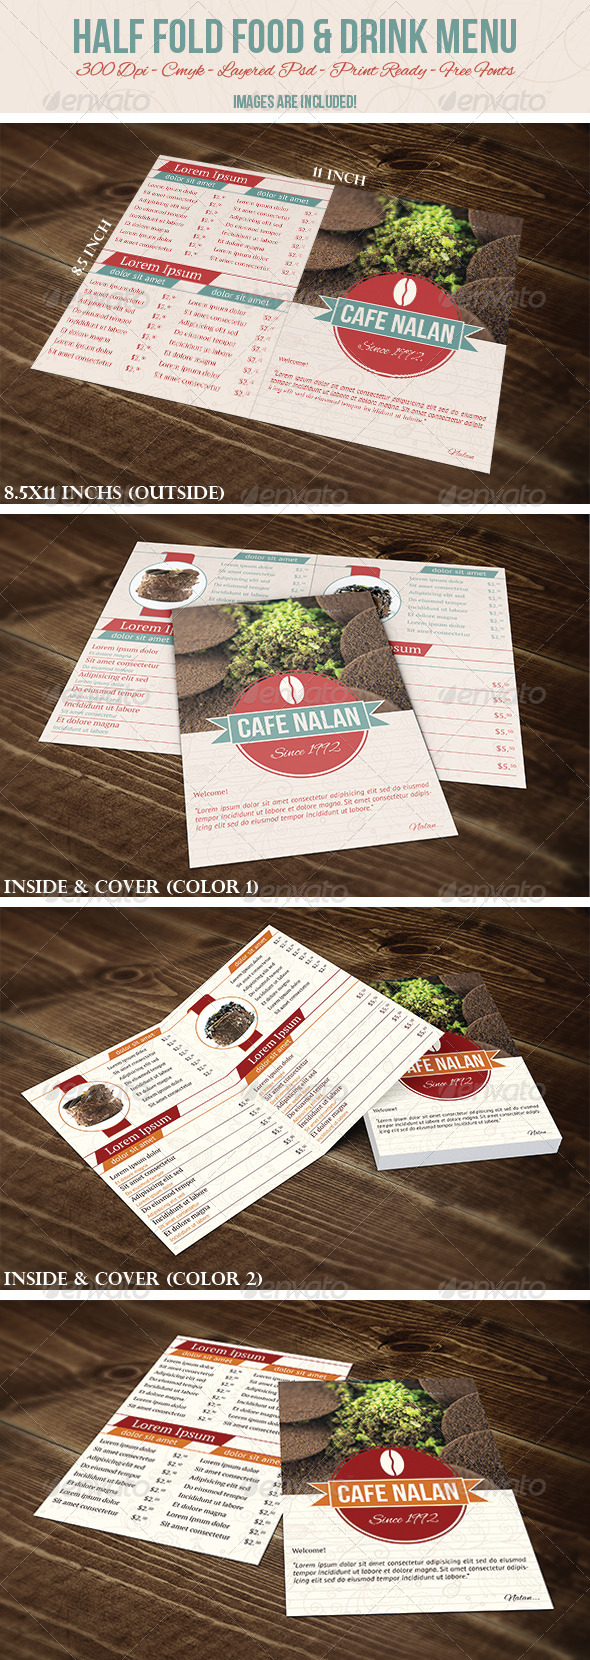 GraphicRiver Half Fold Food & Drink Menu 4869571